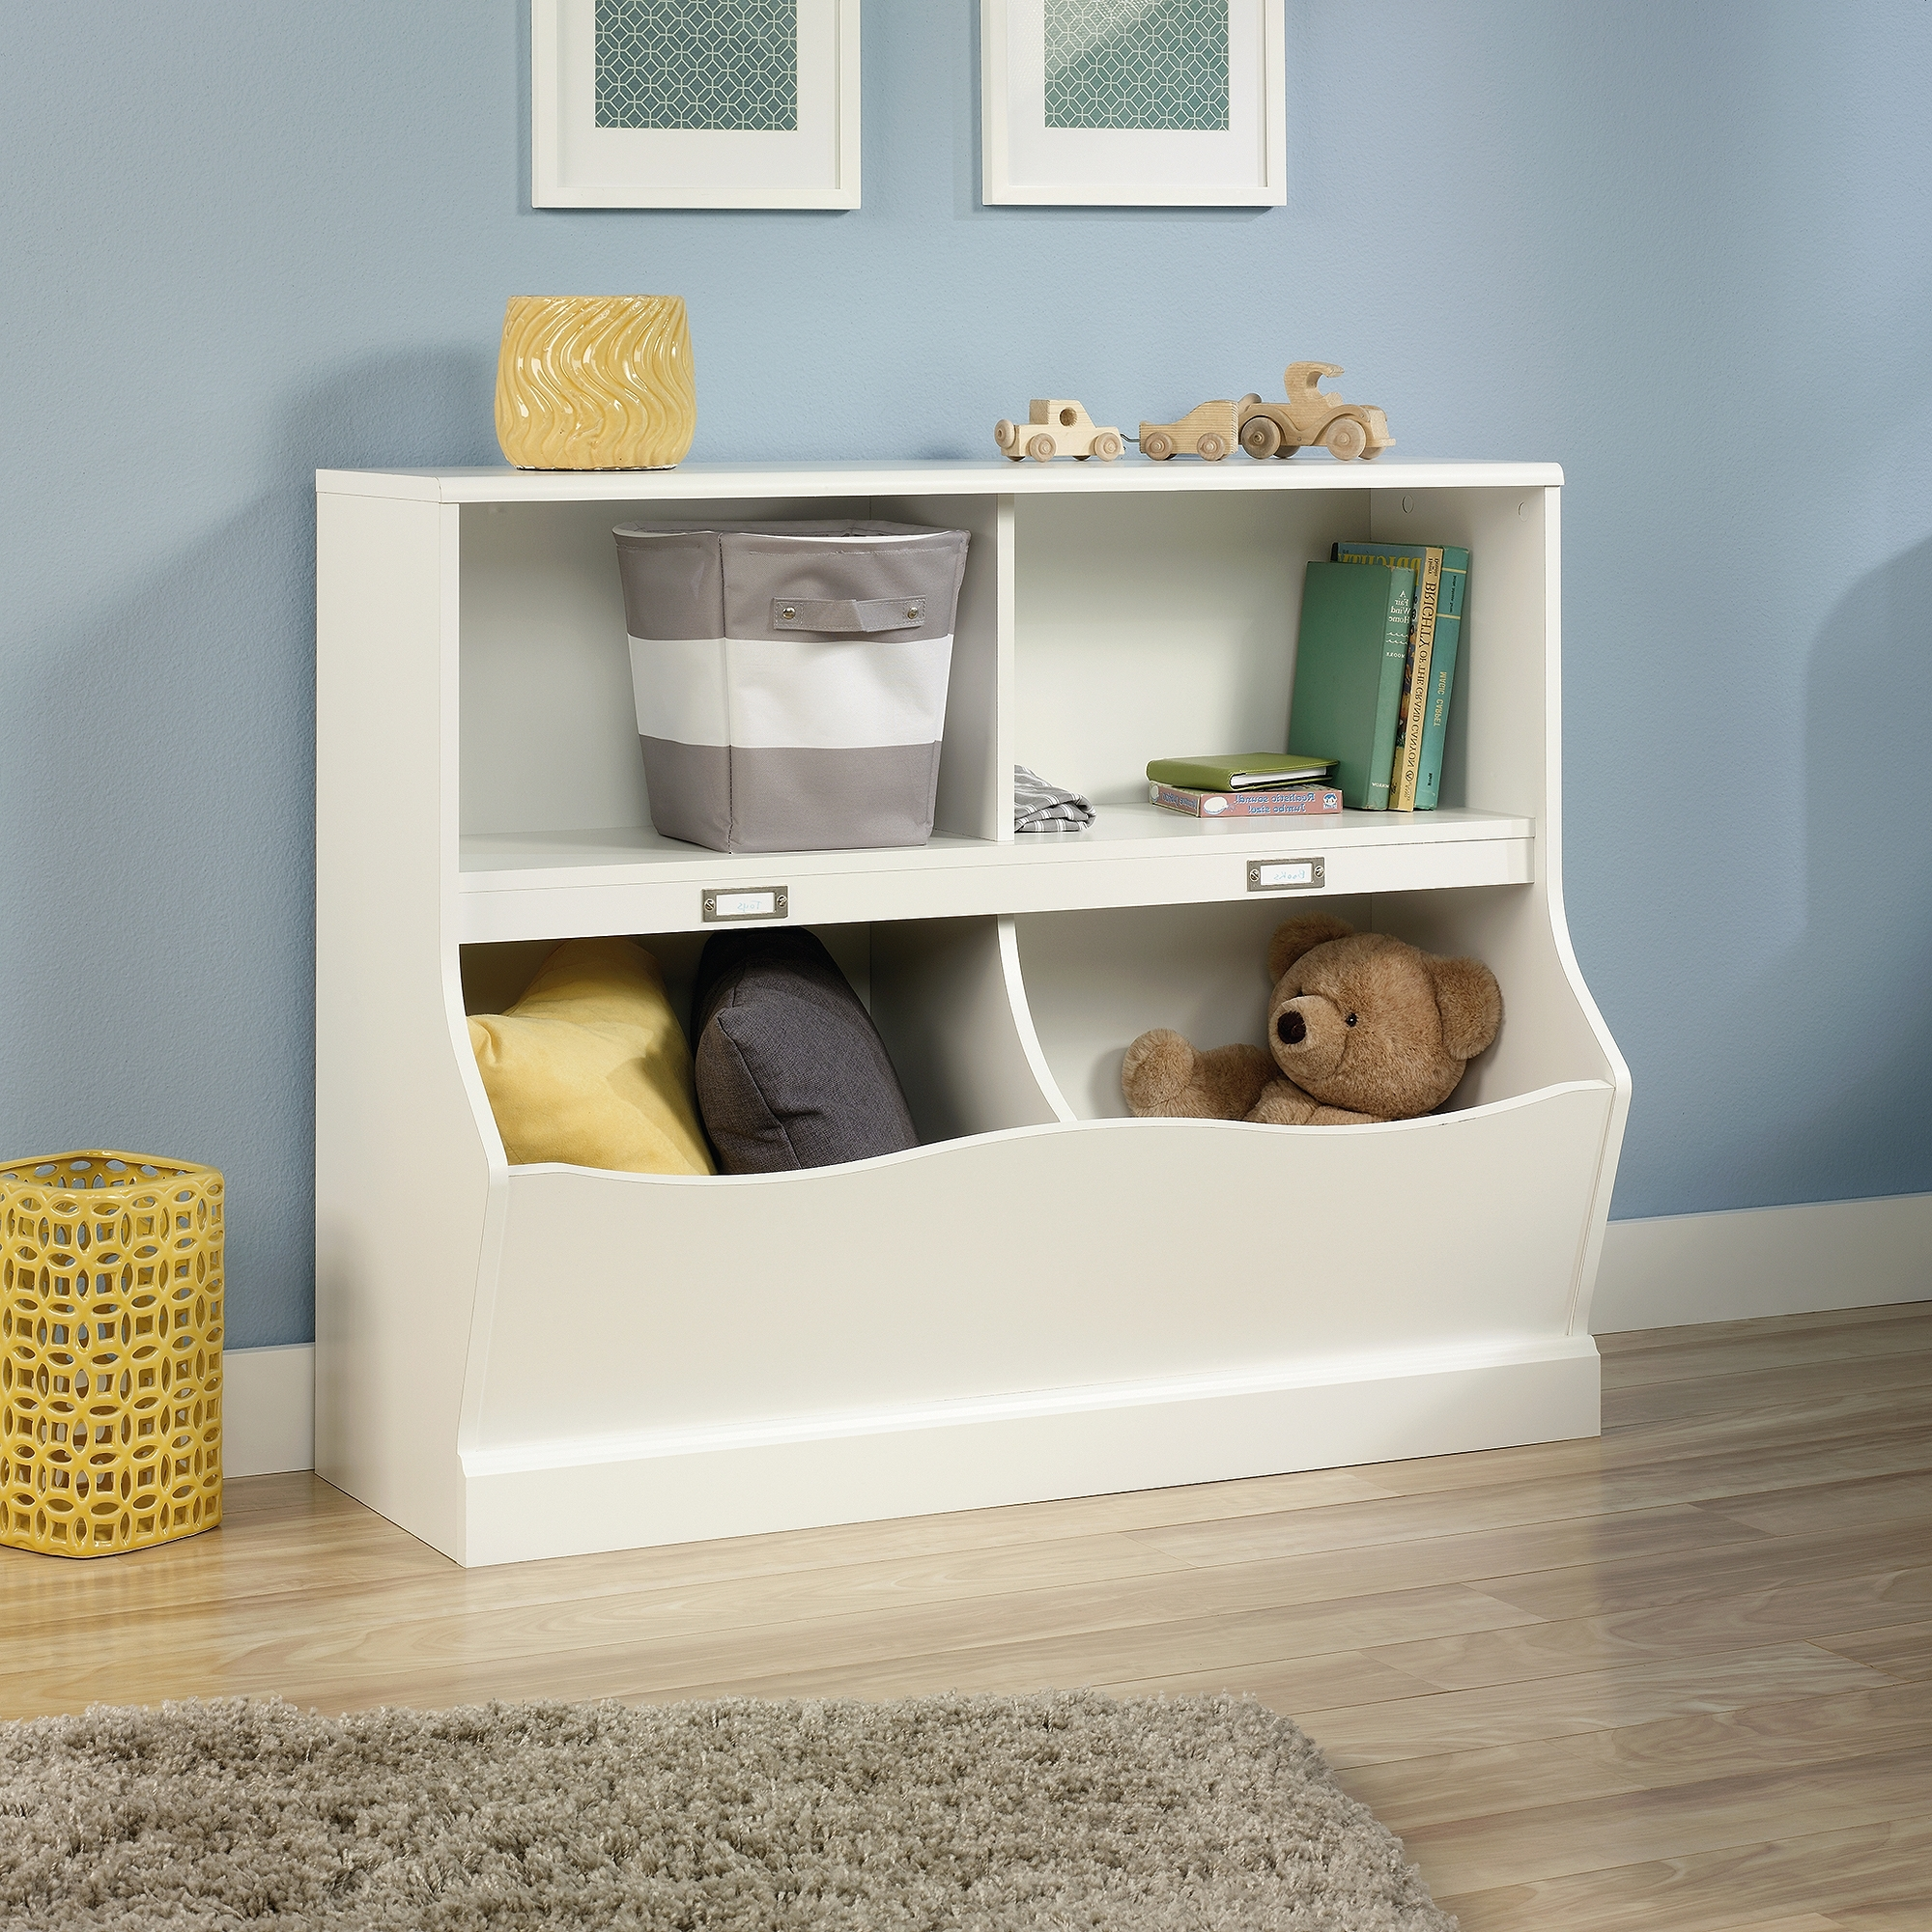 Widely Used White Walmart Bookcases In Sauder Storybook Storage Bin Bookcase, Soft White Finish – Walmart (View 6 of 15)